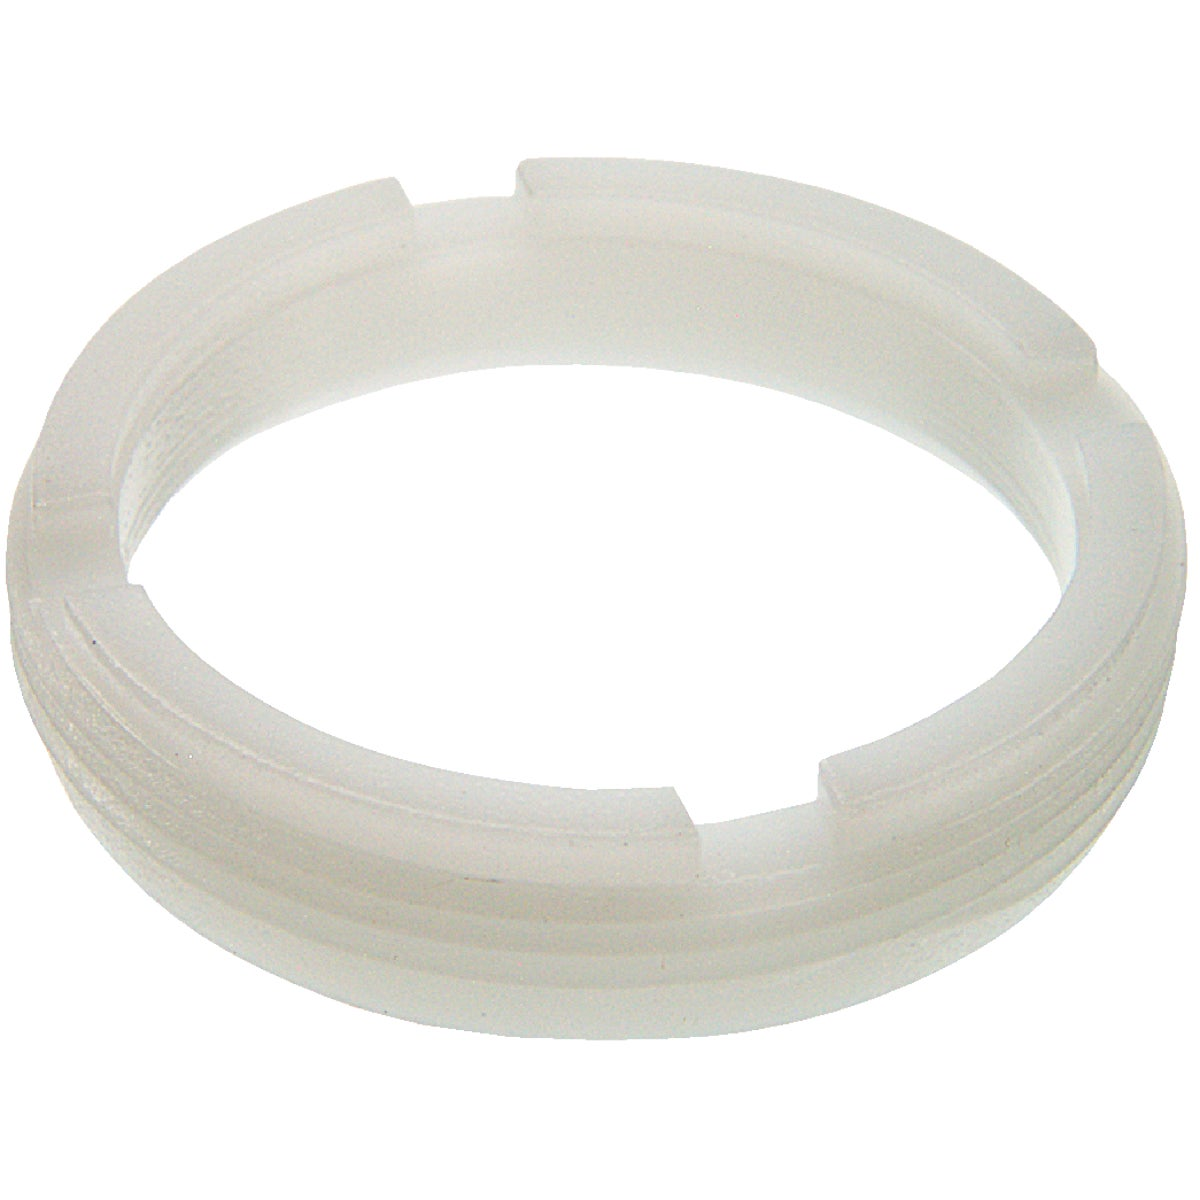 DELTA ADJUSTING RING - 80965 by Danco Perfect Match